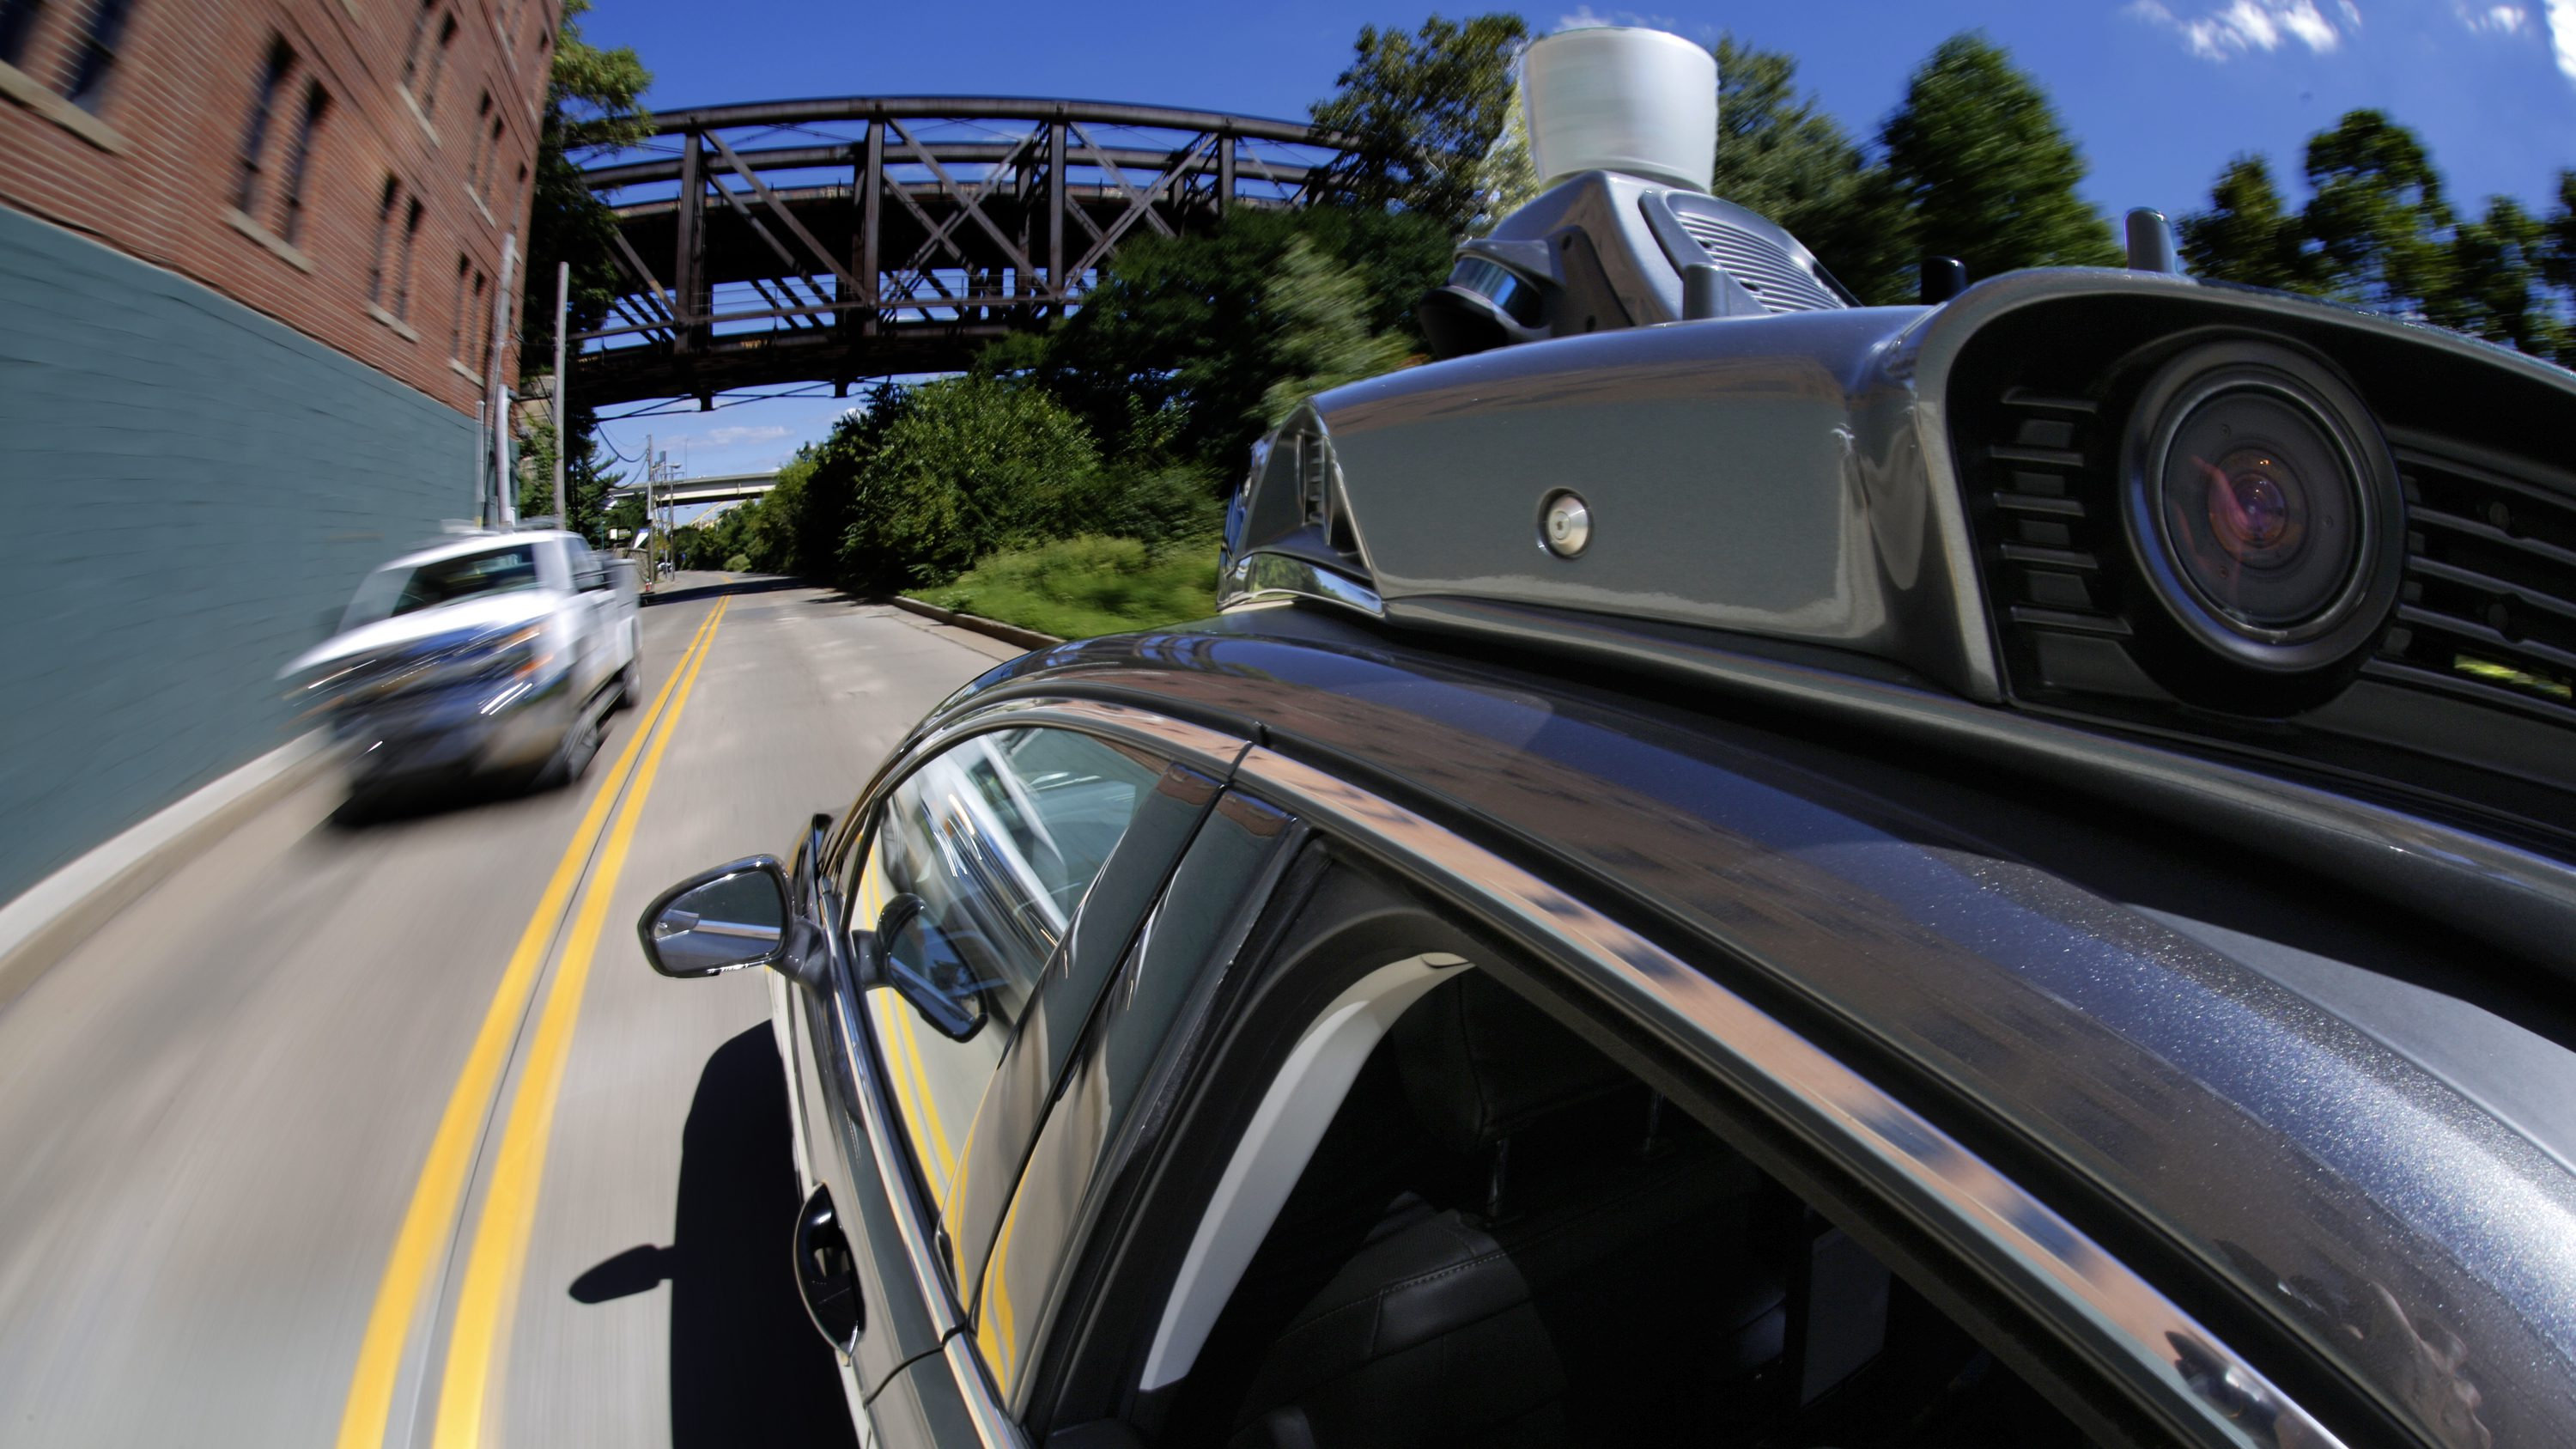 FILE - In this Monday, Sept. 12, 2016, file photo, a self-driving Uber drives in Pittsburgh during a media preview. After taking millions of factory jobs, robots could be coming for a new class of worker: people who drive for a living. (AP Photo/Gene J. Puskar, File)